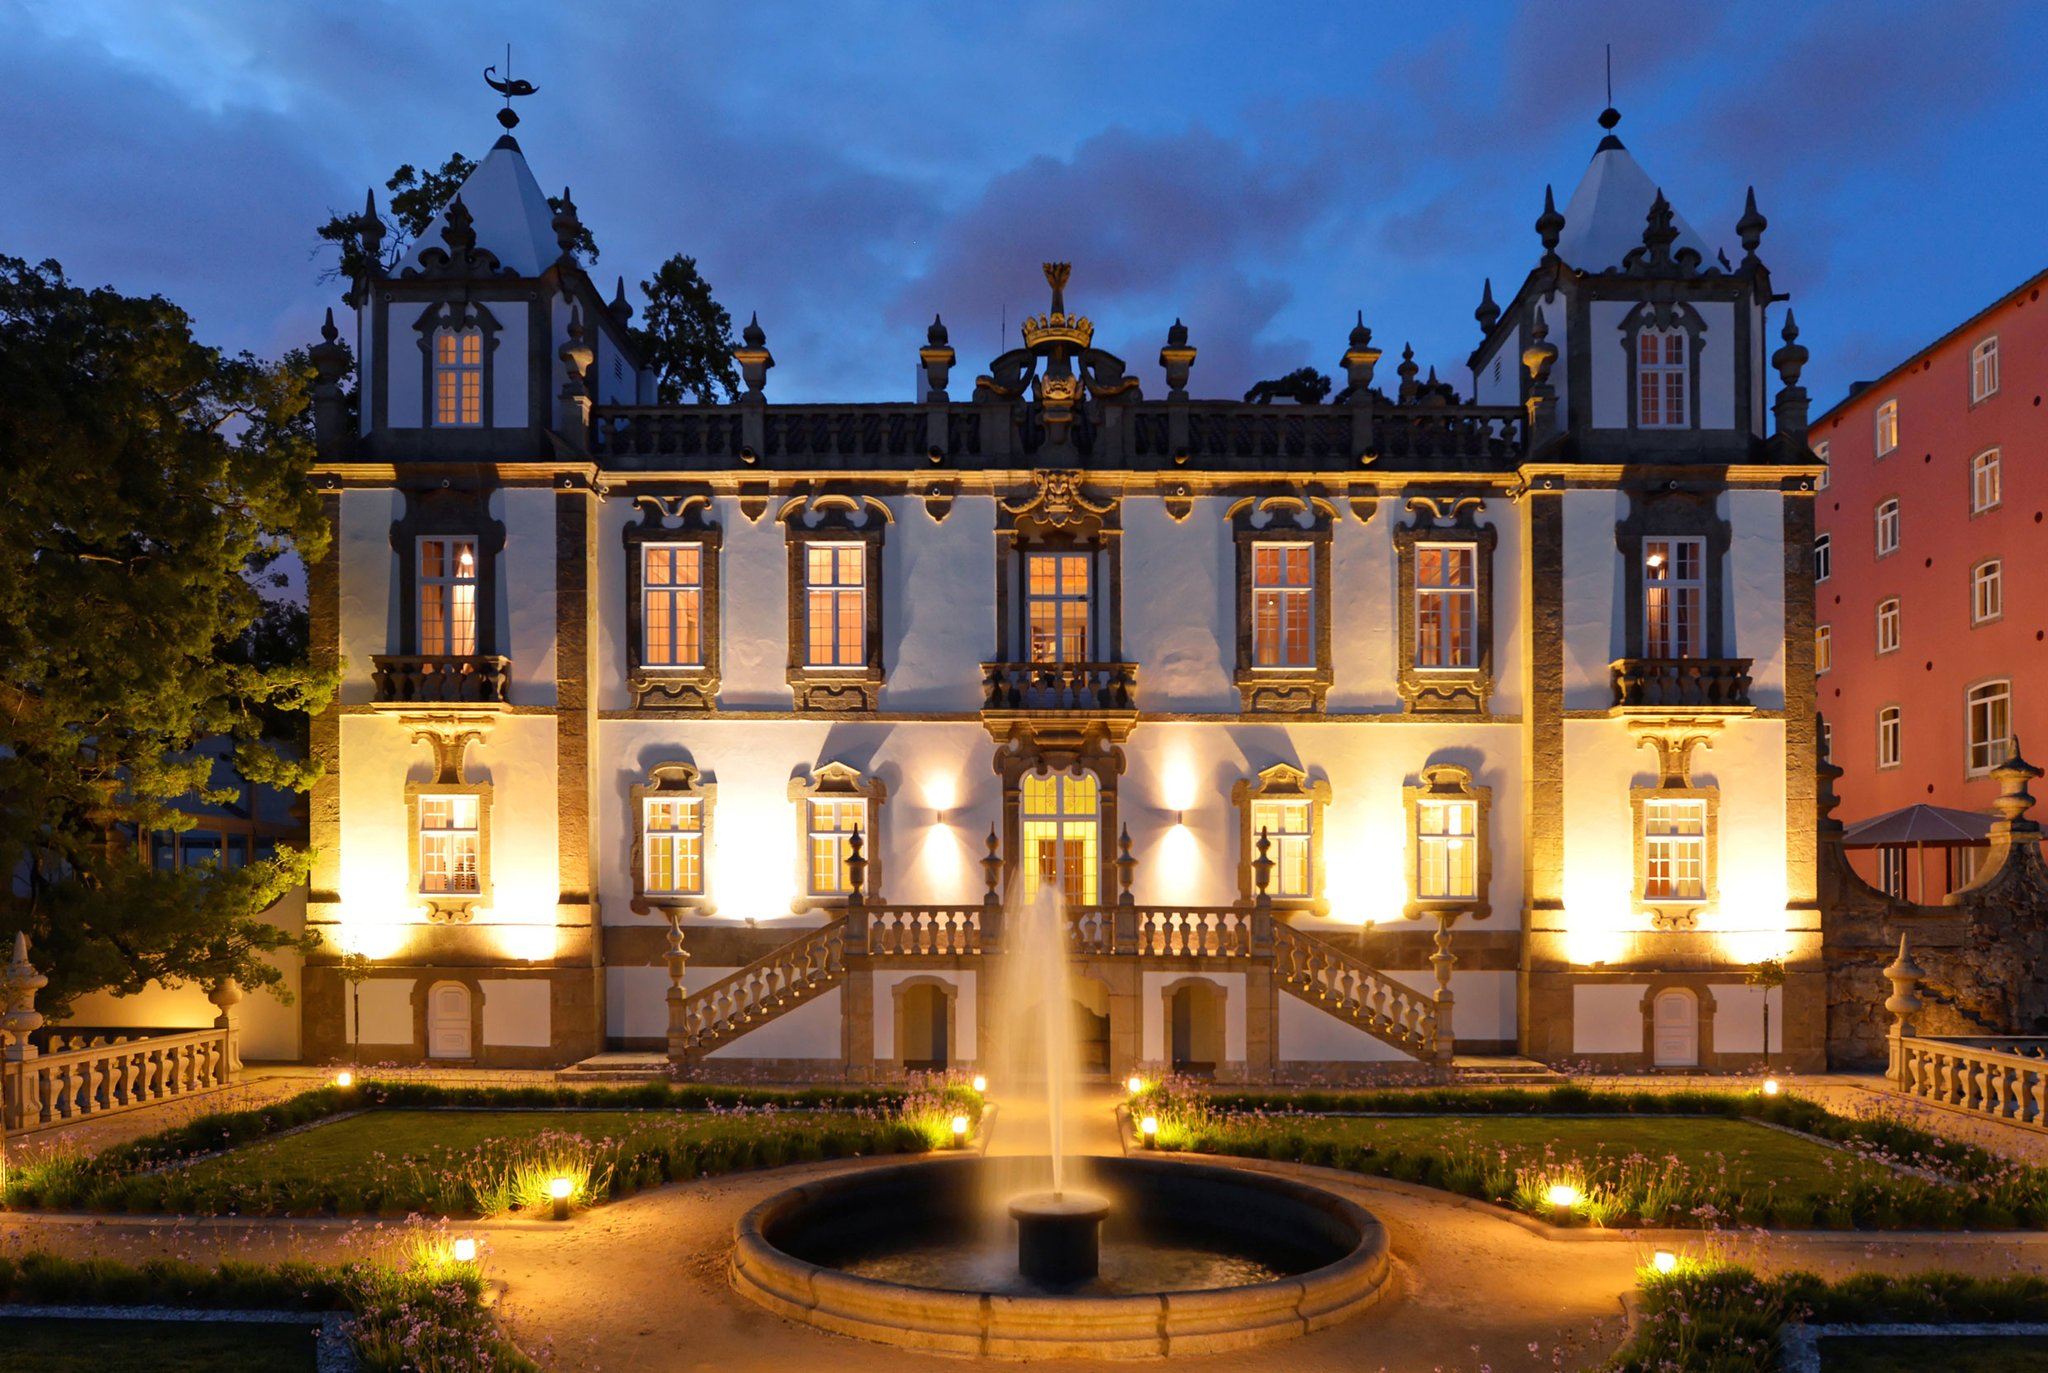 Pestana Palacio do Freixo